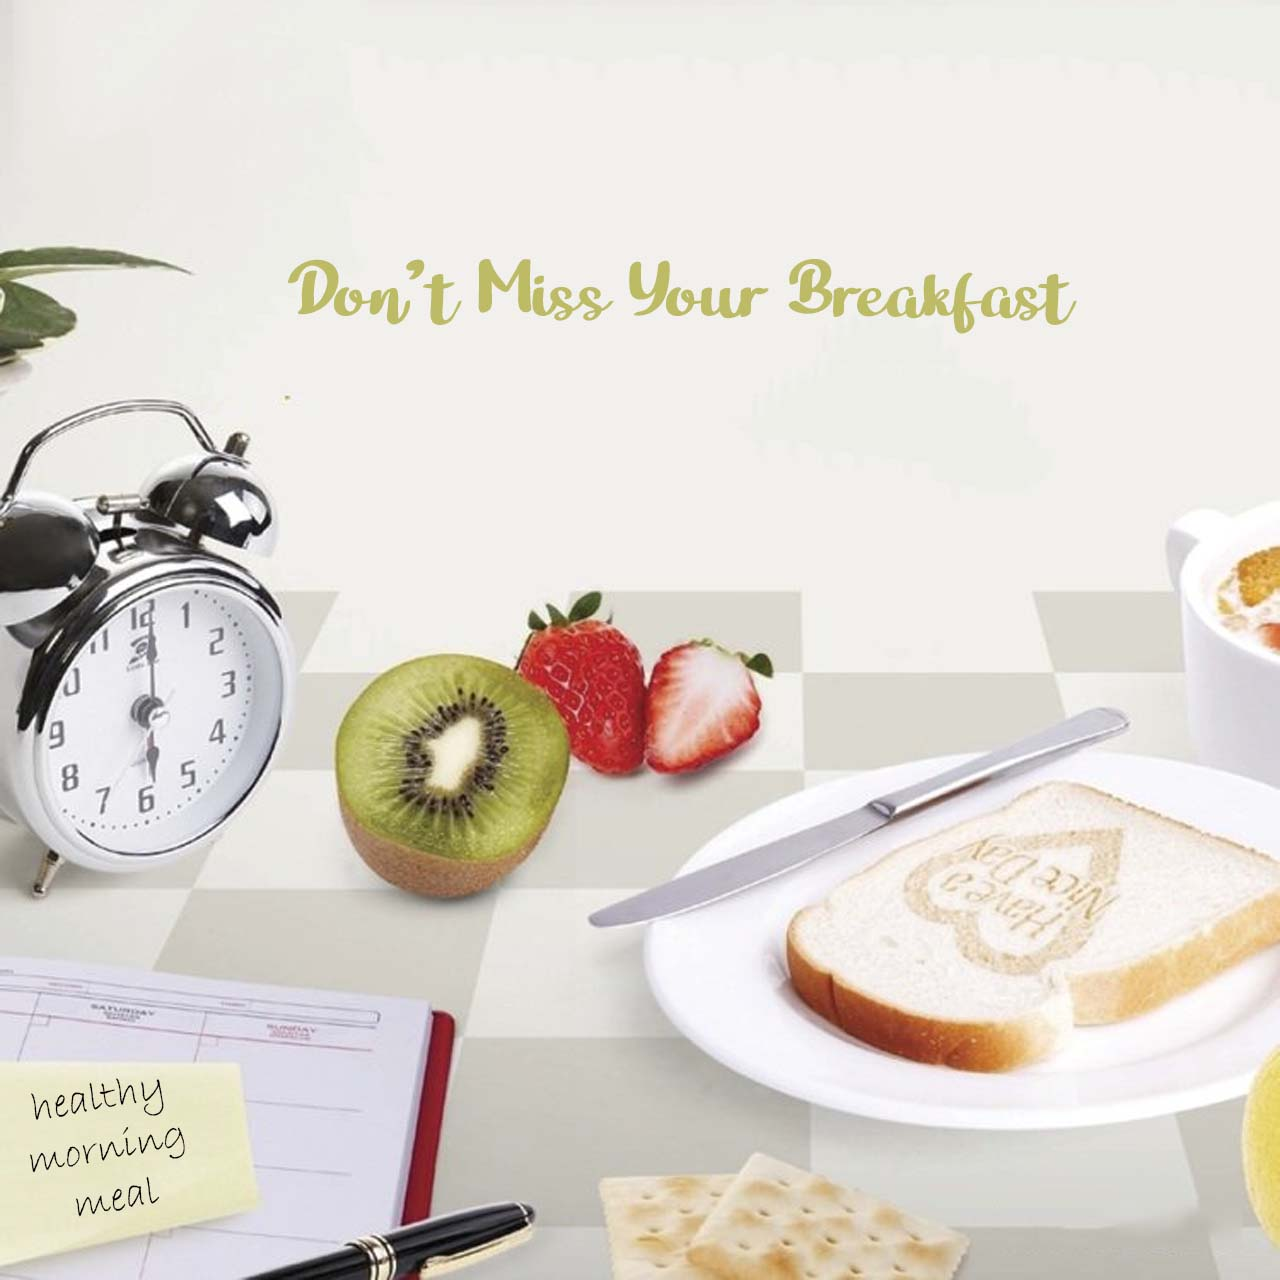 Never Miss Your Breakfast